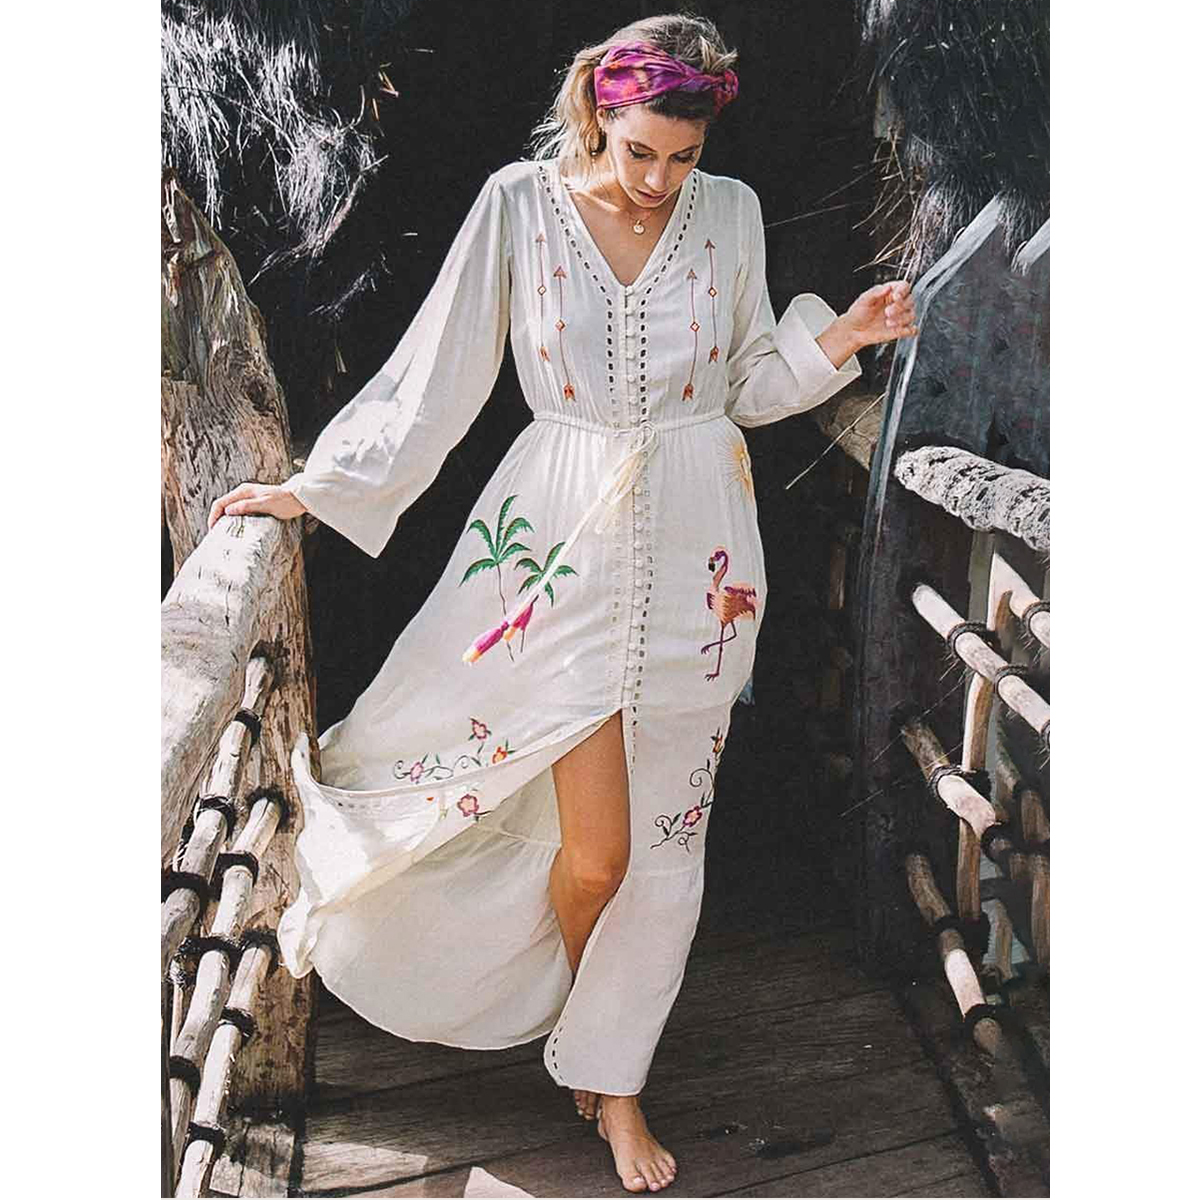 Boho Loose Embroidery Long Dress Women 2018 Summer Autumn Long Sleeve V neck Sexy Dresses Ladies Floral Beach Hippie Midi Dress outfits para playa mujer 2019